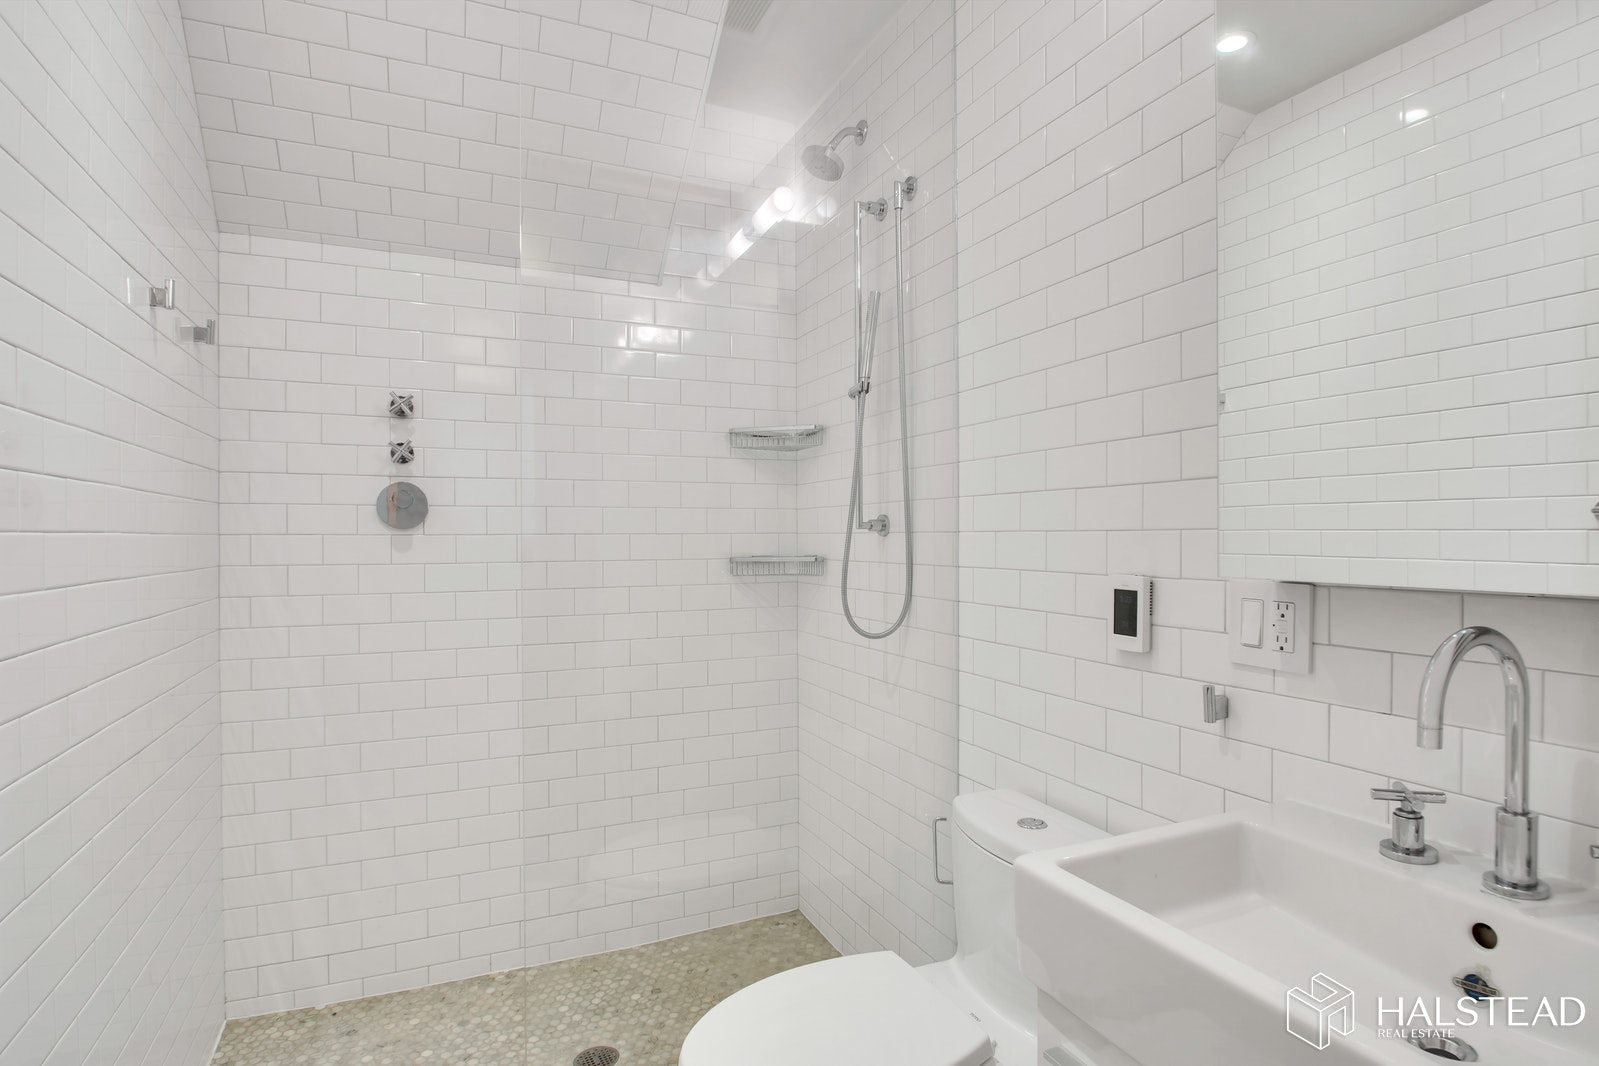 302 Prospect Place 1, Prospect Heights, Brooklyn, NY, 11238, $2,950, Rented Property, Halstead Real Estate, Photo 14